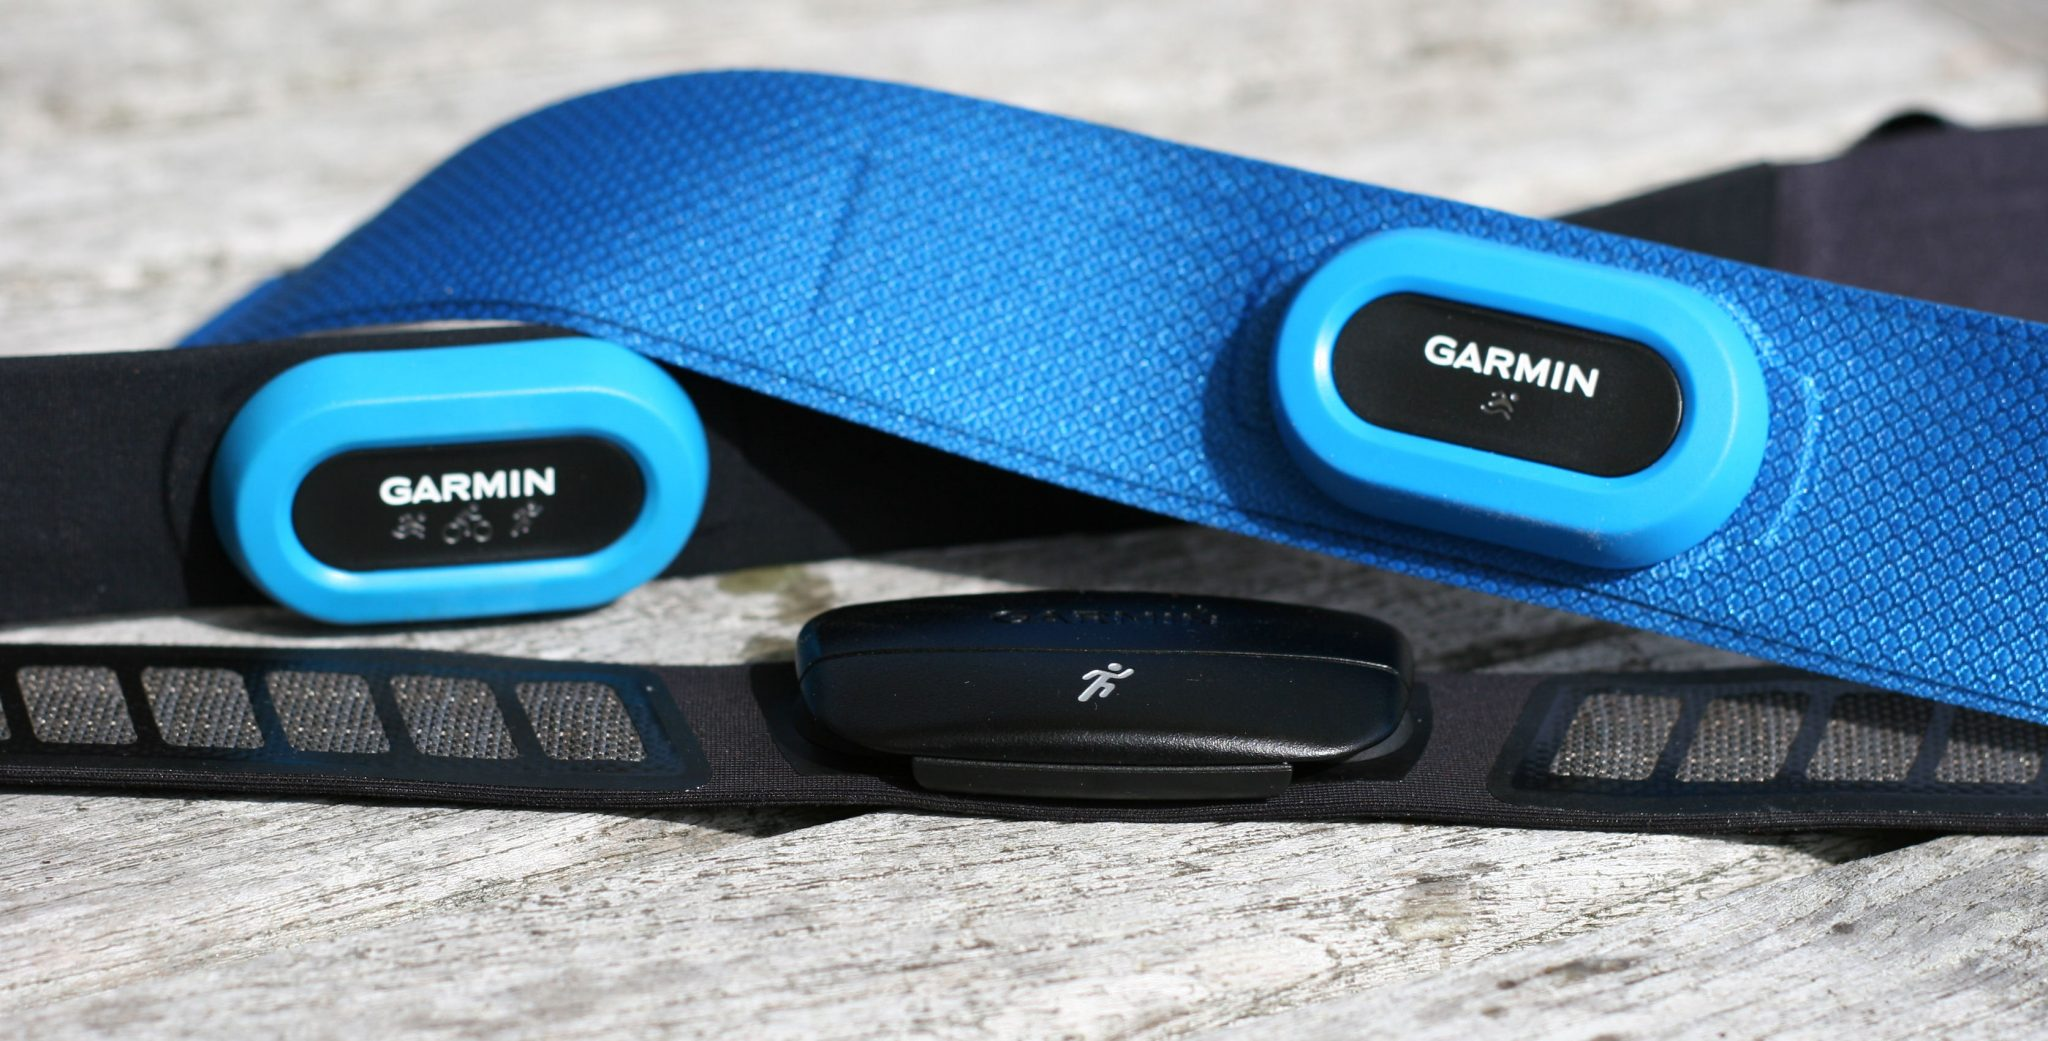 Garmin HRM-RUN HRM-TRI HRM-SWIM